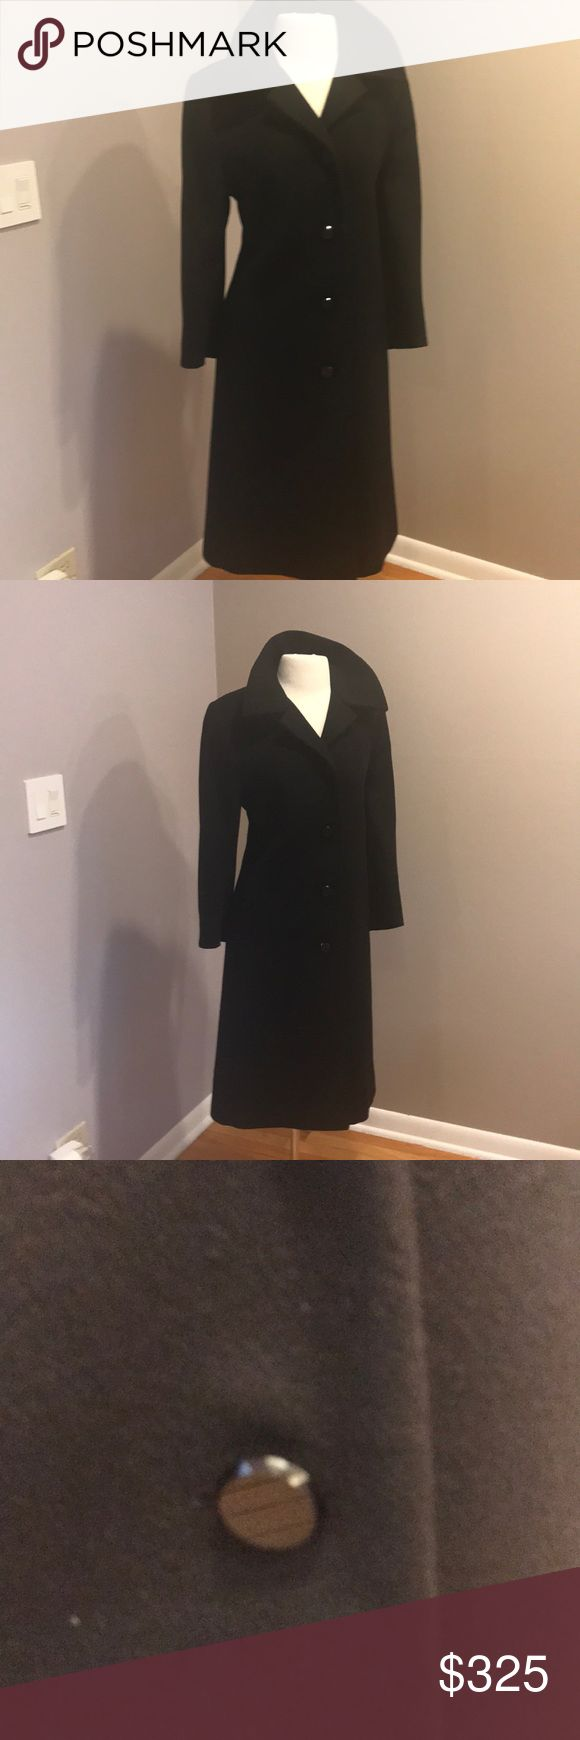 BLACK FRIDAY SALE BLACK💯 cashmere coaT/ FLEURETTE We've already established how absolutely phenomenal this particular line is. Fleurette makes all their coats out of the finest cashmere and lambs wool.Retailing in the 1000's . It's coconut paragraph as well as I would like it too but it hits mid calf with a small slit in the back. This is their timeless cashmere coat not much has changed from year to year. Priced very well ! Please no low ball offers fleurette for neiman marcus Jackets…